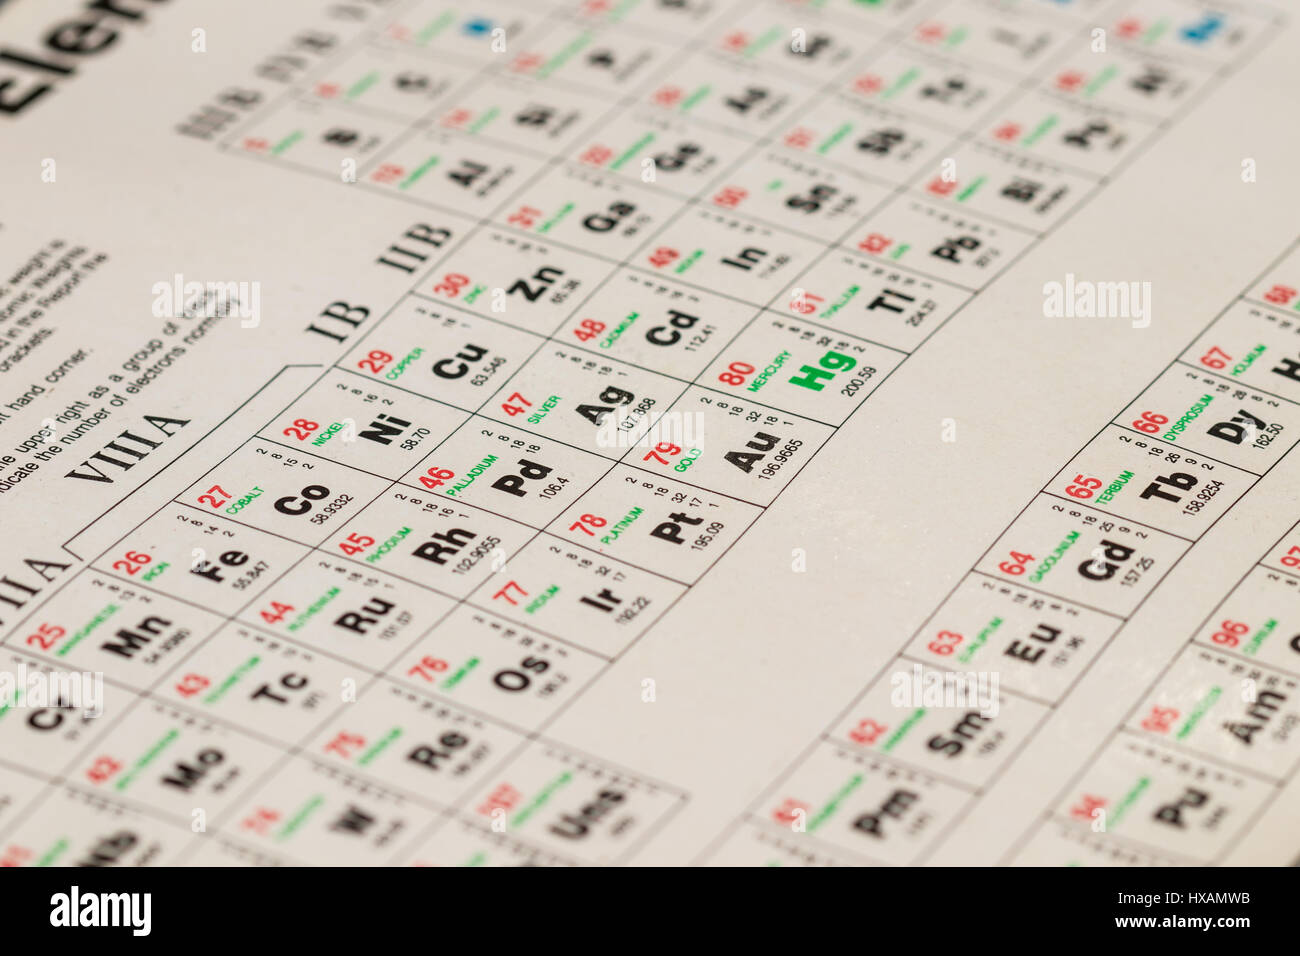 Atomic weight stock photos atomic weight stock images alamy detail of an old periodic table of elements showing their symbol atomic weight urtaz Image collections